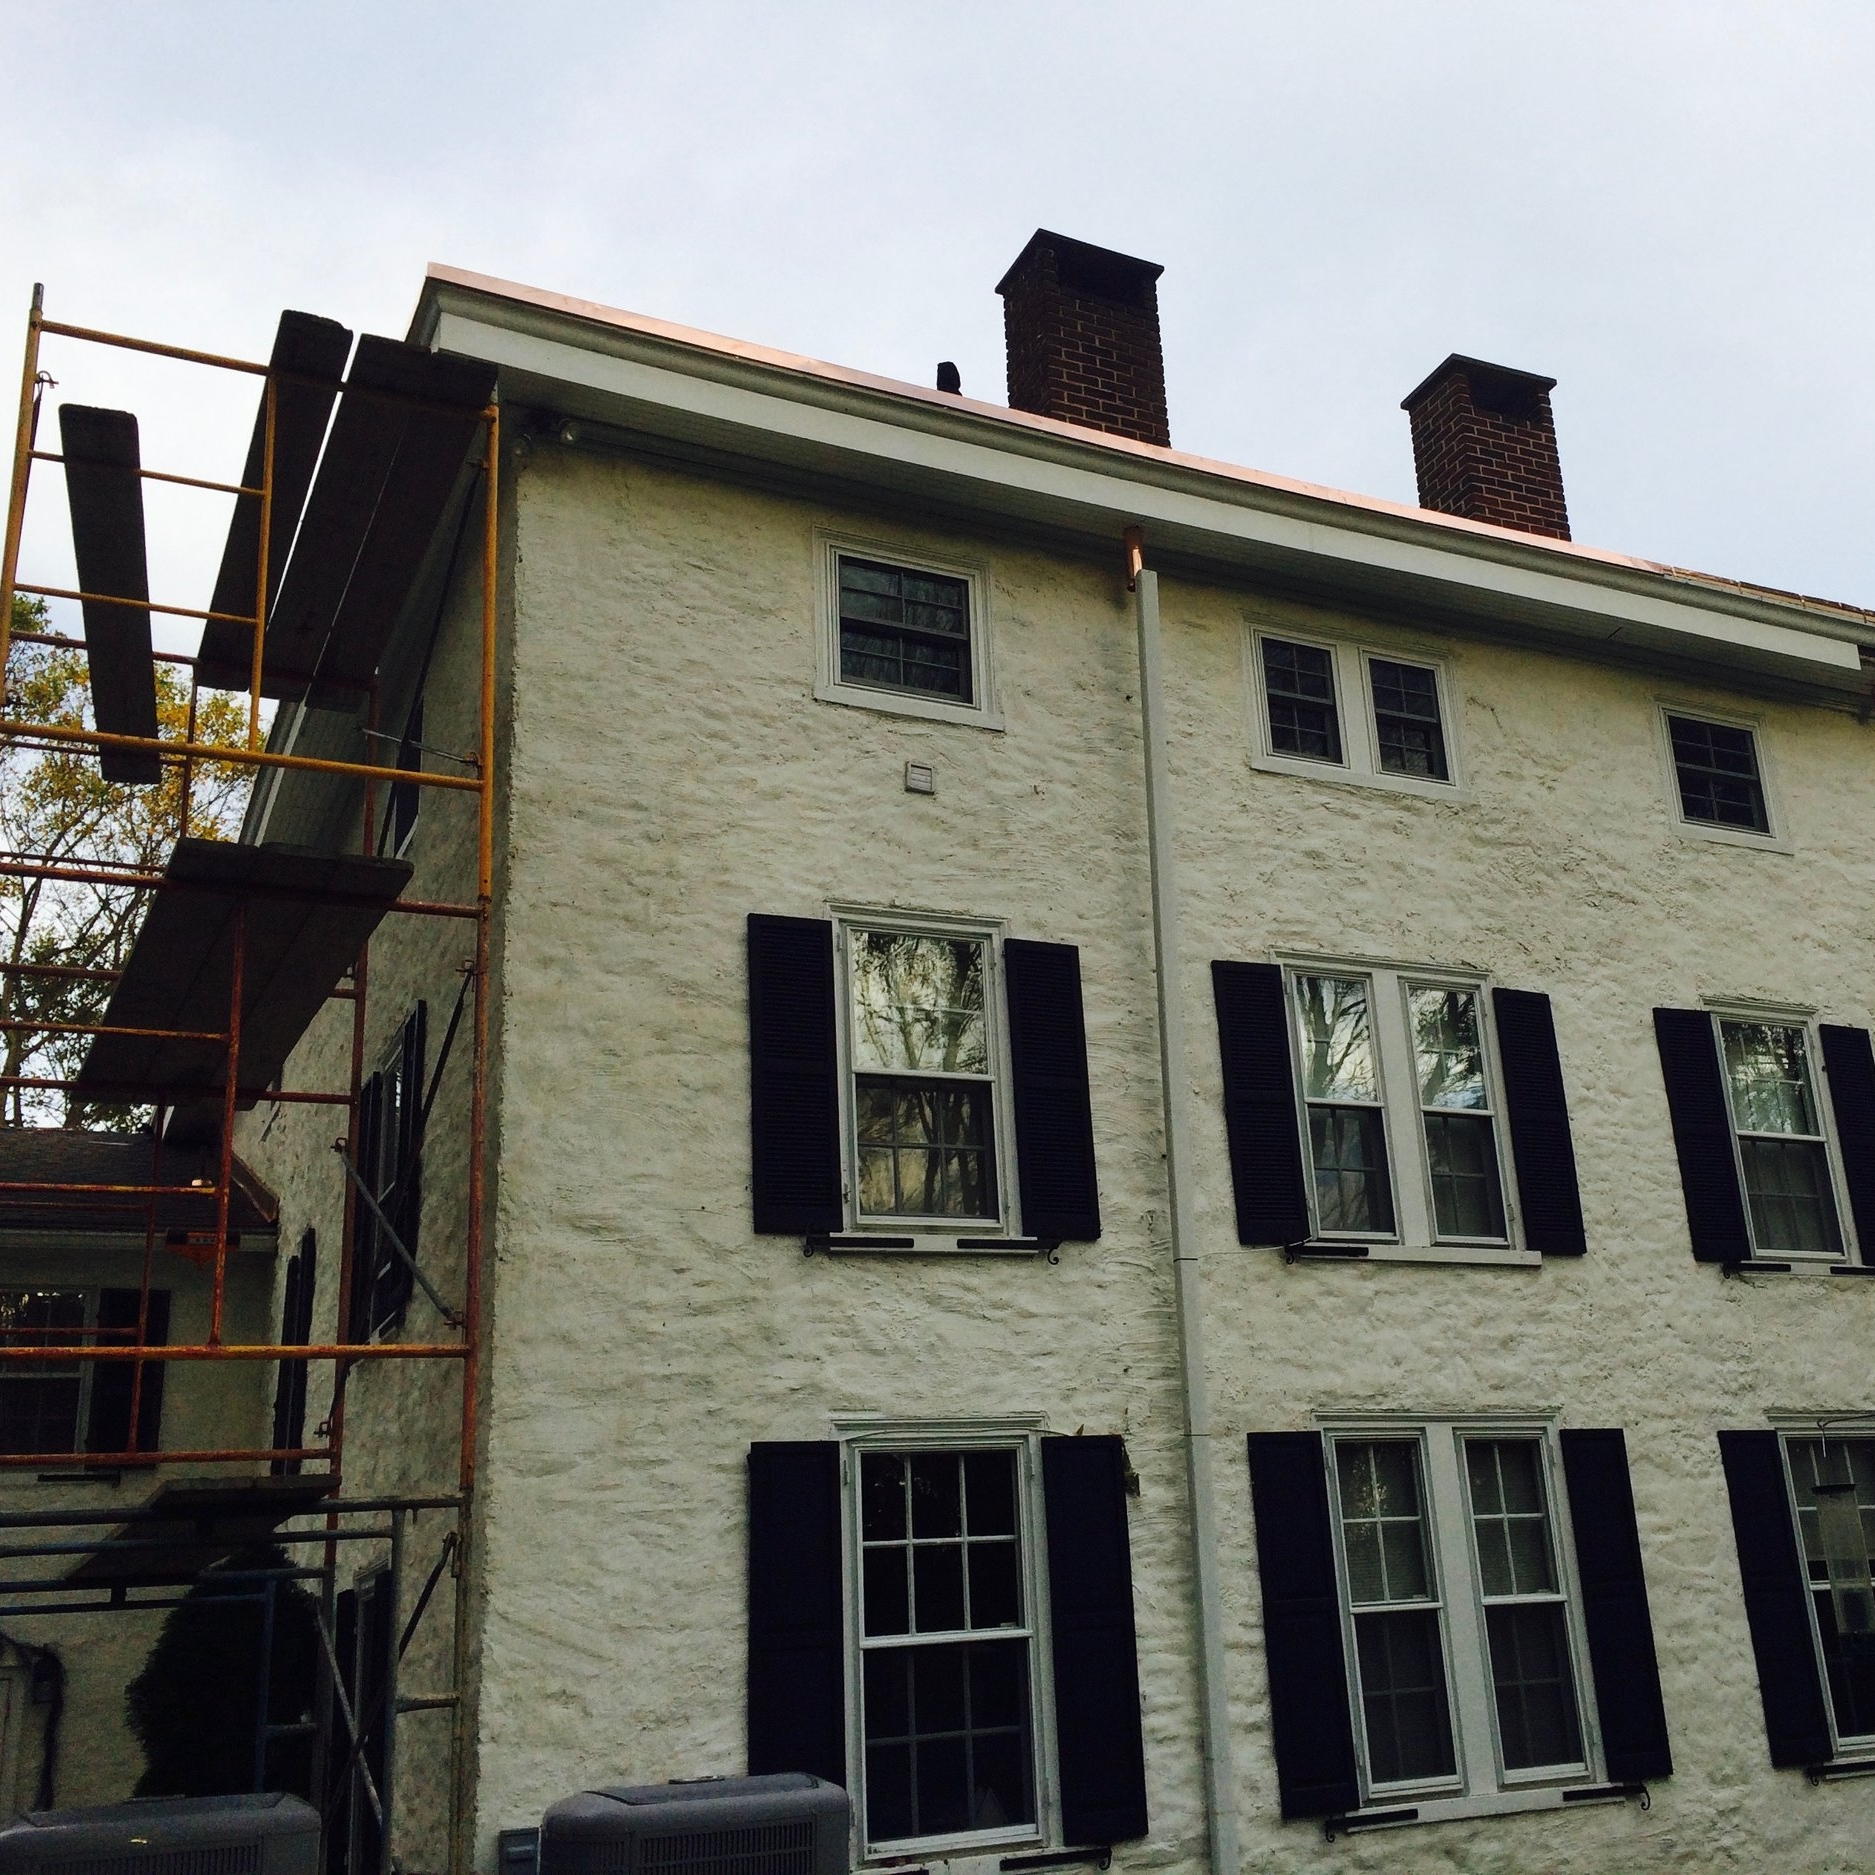 This historic farmhouse, in Dilworthtown, had major problems with its flat roof, pole gutters, drainage system, soffit, and fascia – all of which we had to rebuild, mostly in copper. The owners found us after searching for traditional roofers comfortable enough to solder over 200' of copper pole gutters, as everybody else had wanted to instead cover it all with wood decking and external aluminum gutters. This spring, we will continue such renovations by restoring the widow's walk that once provided a panoramic view of the surrounding farmland.